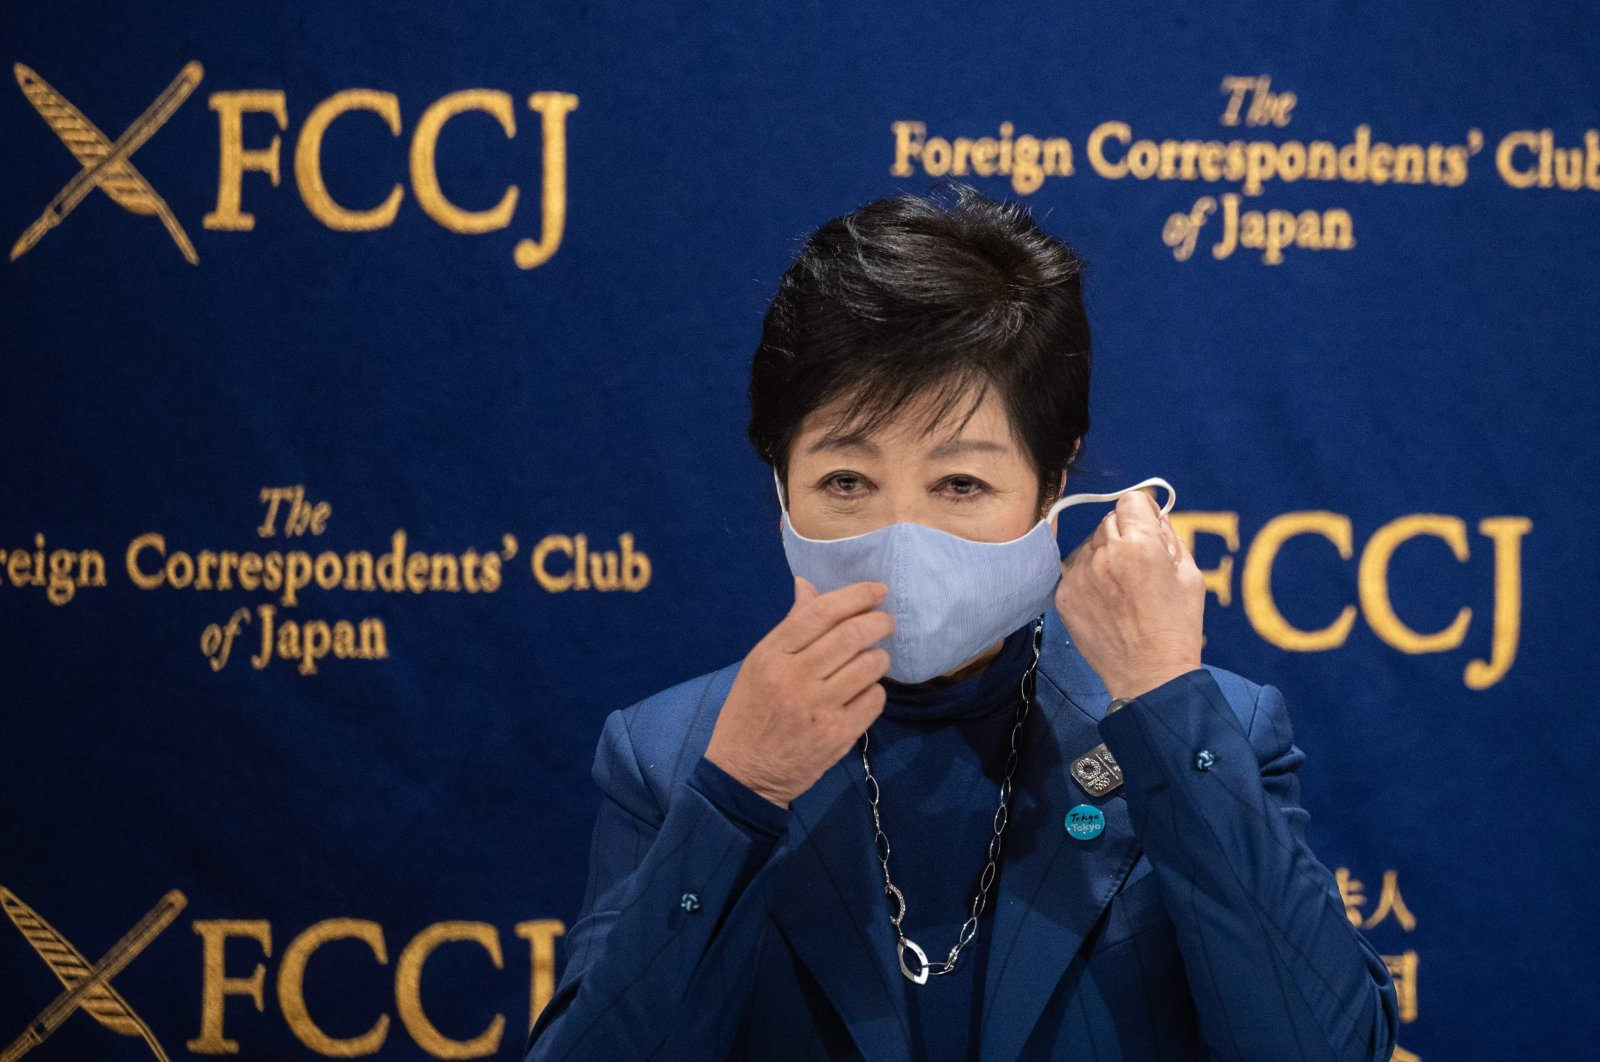 Tokyo Governor Yuriko Koike takes off her mask during a press conference, in Tokyo, Japan, Nov. 24, 2020. (AFP Photo)